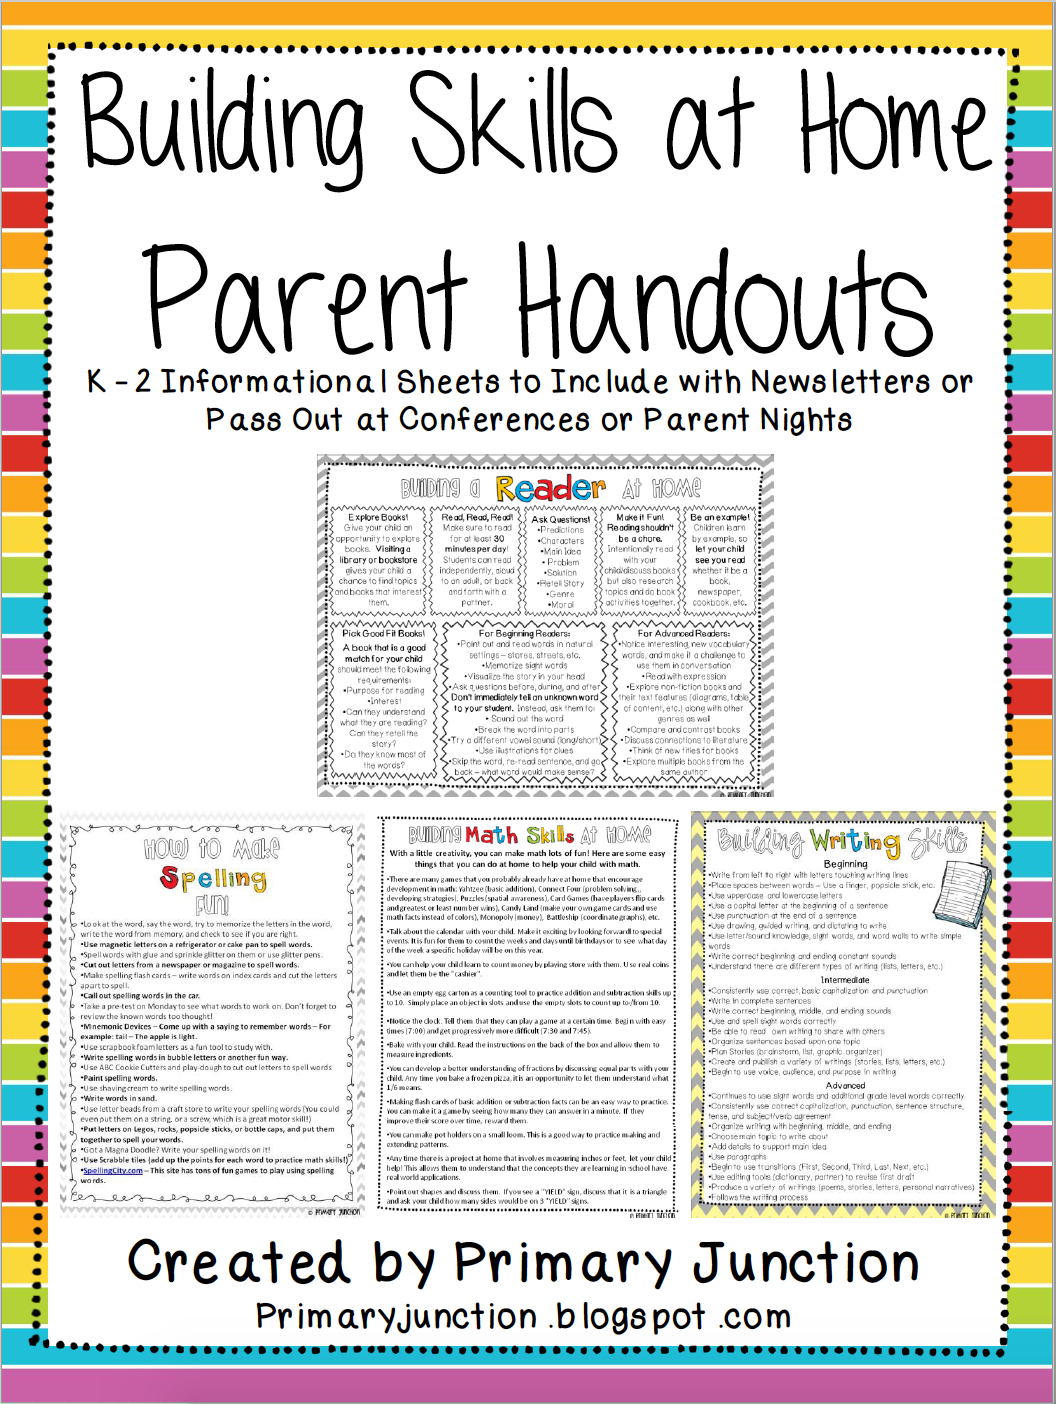 Building Skills at Home Parent Handouts Primary Junction